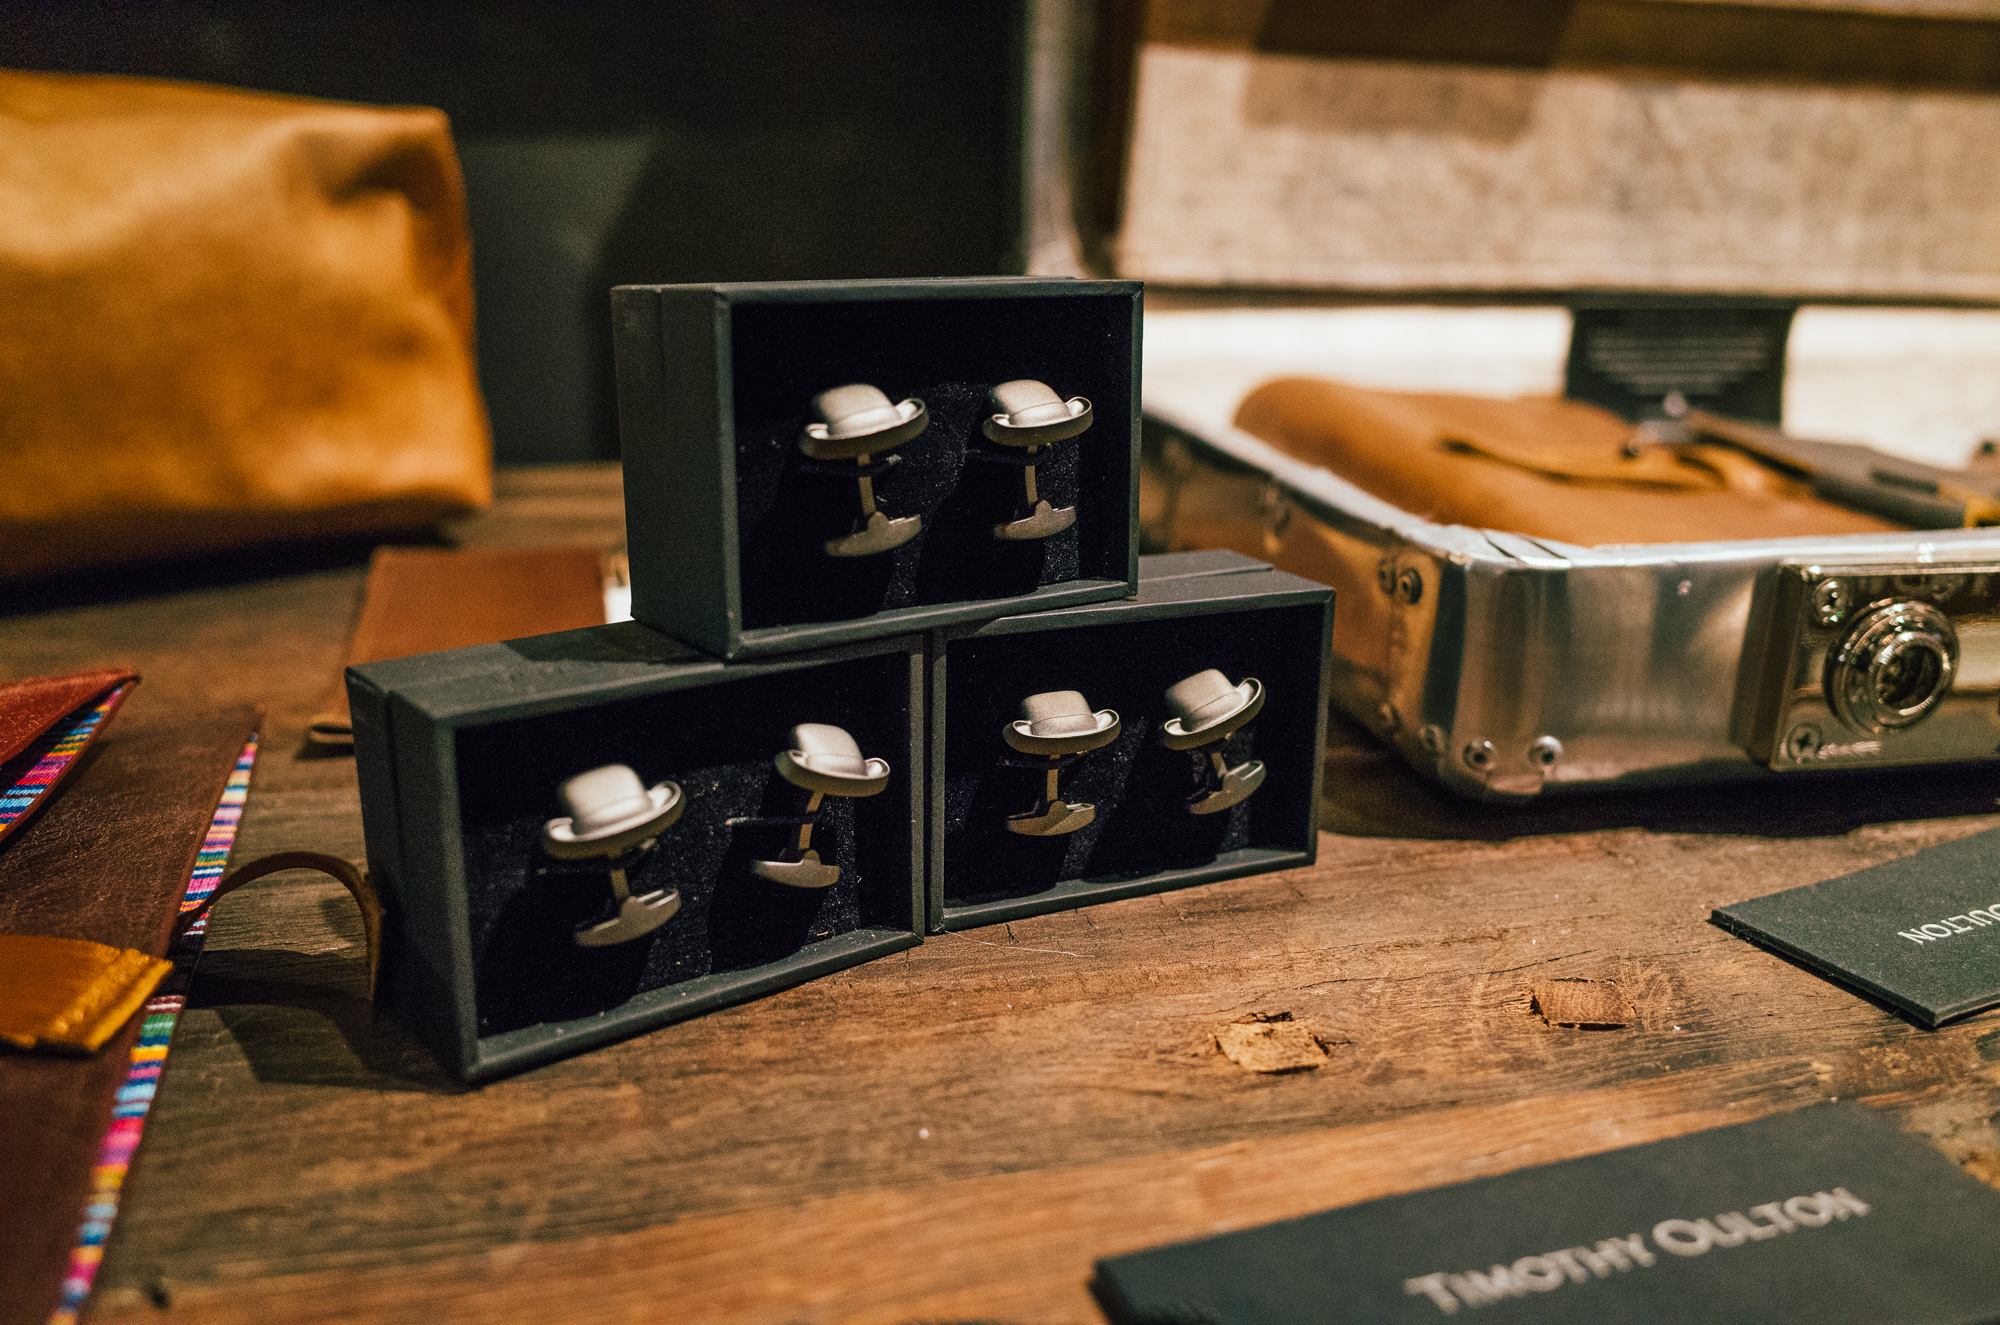 You can't get any more British than fancy hat cufflinks.